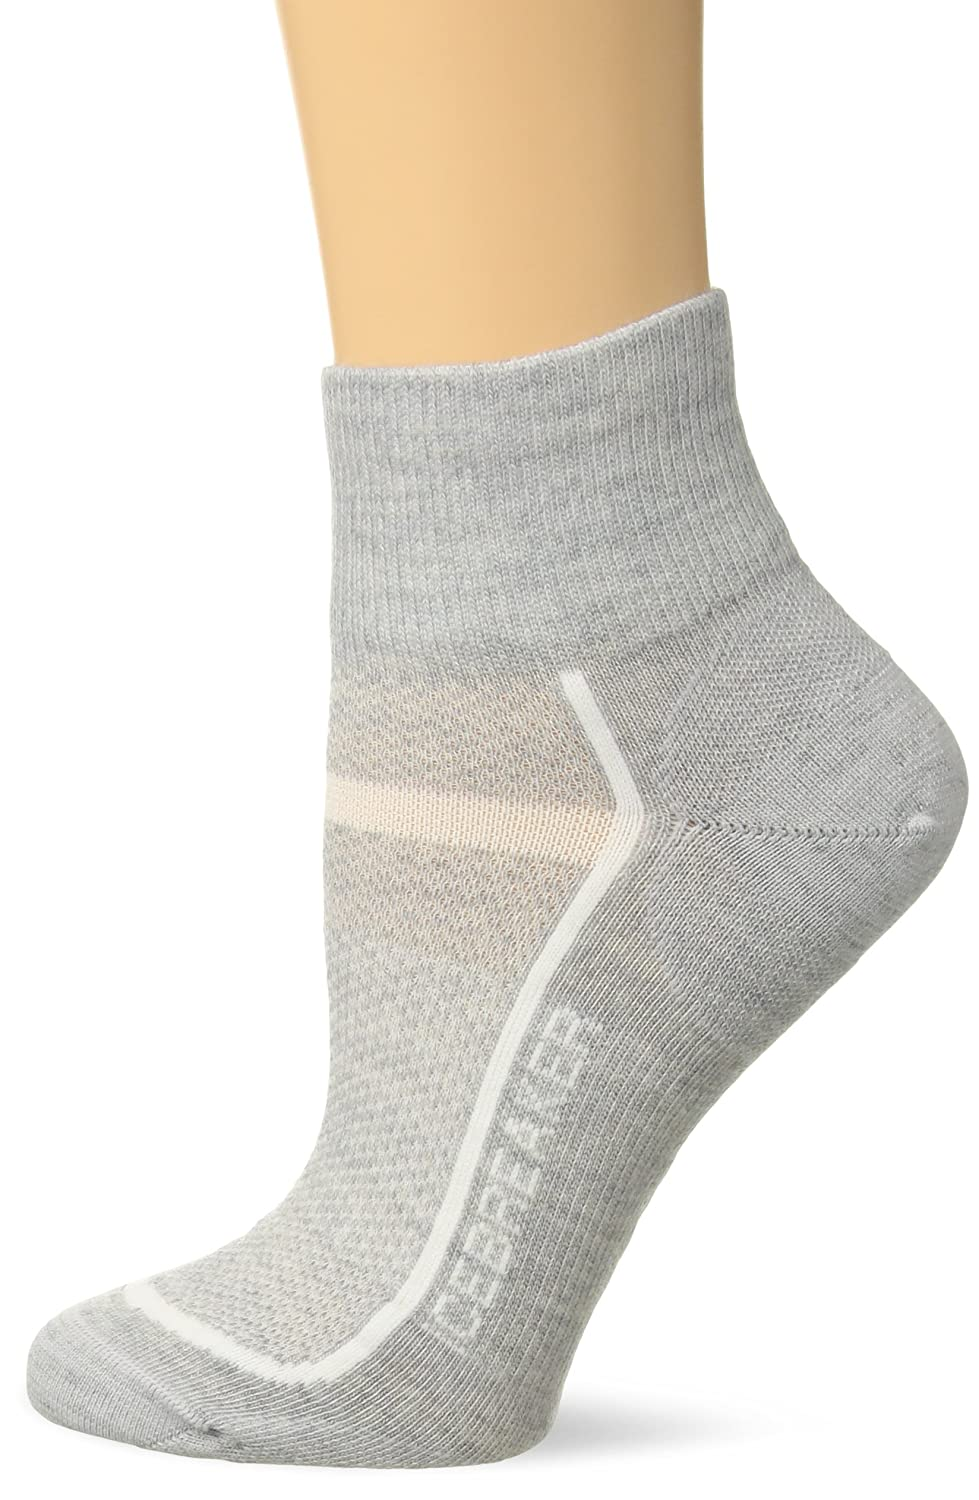 Icebreaker Women's Multisport Ultra Light Mini Socks